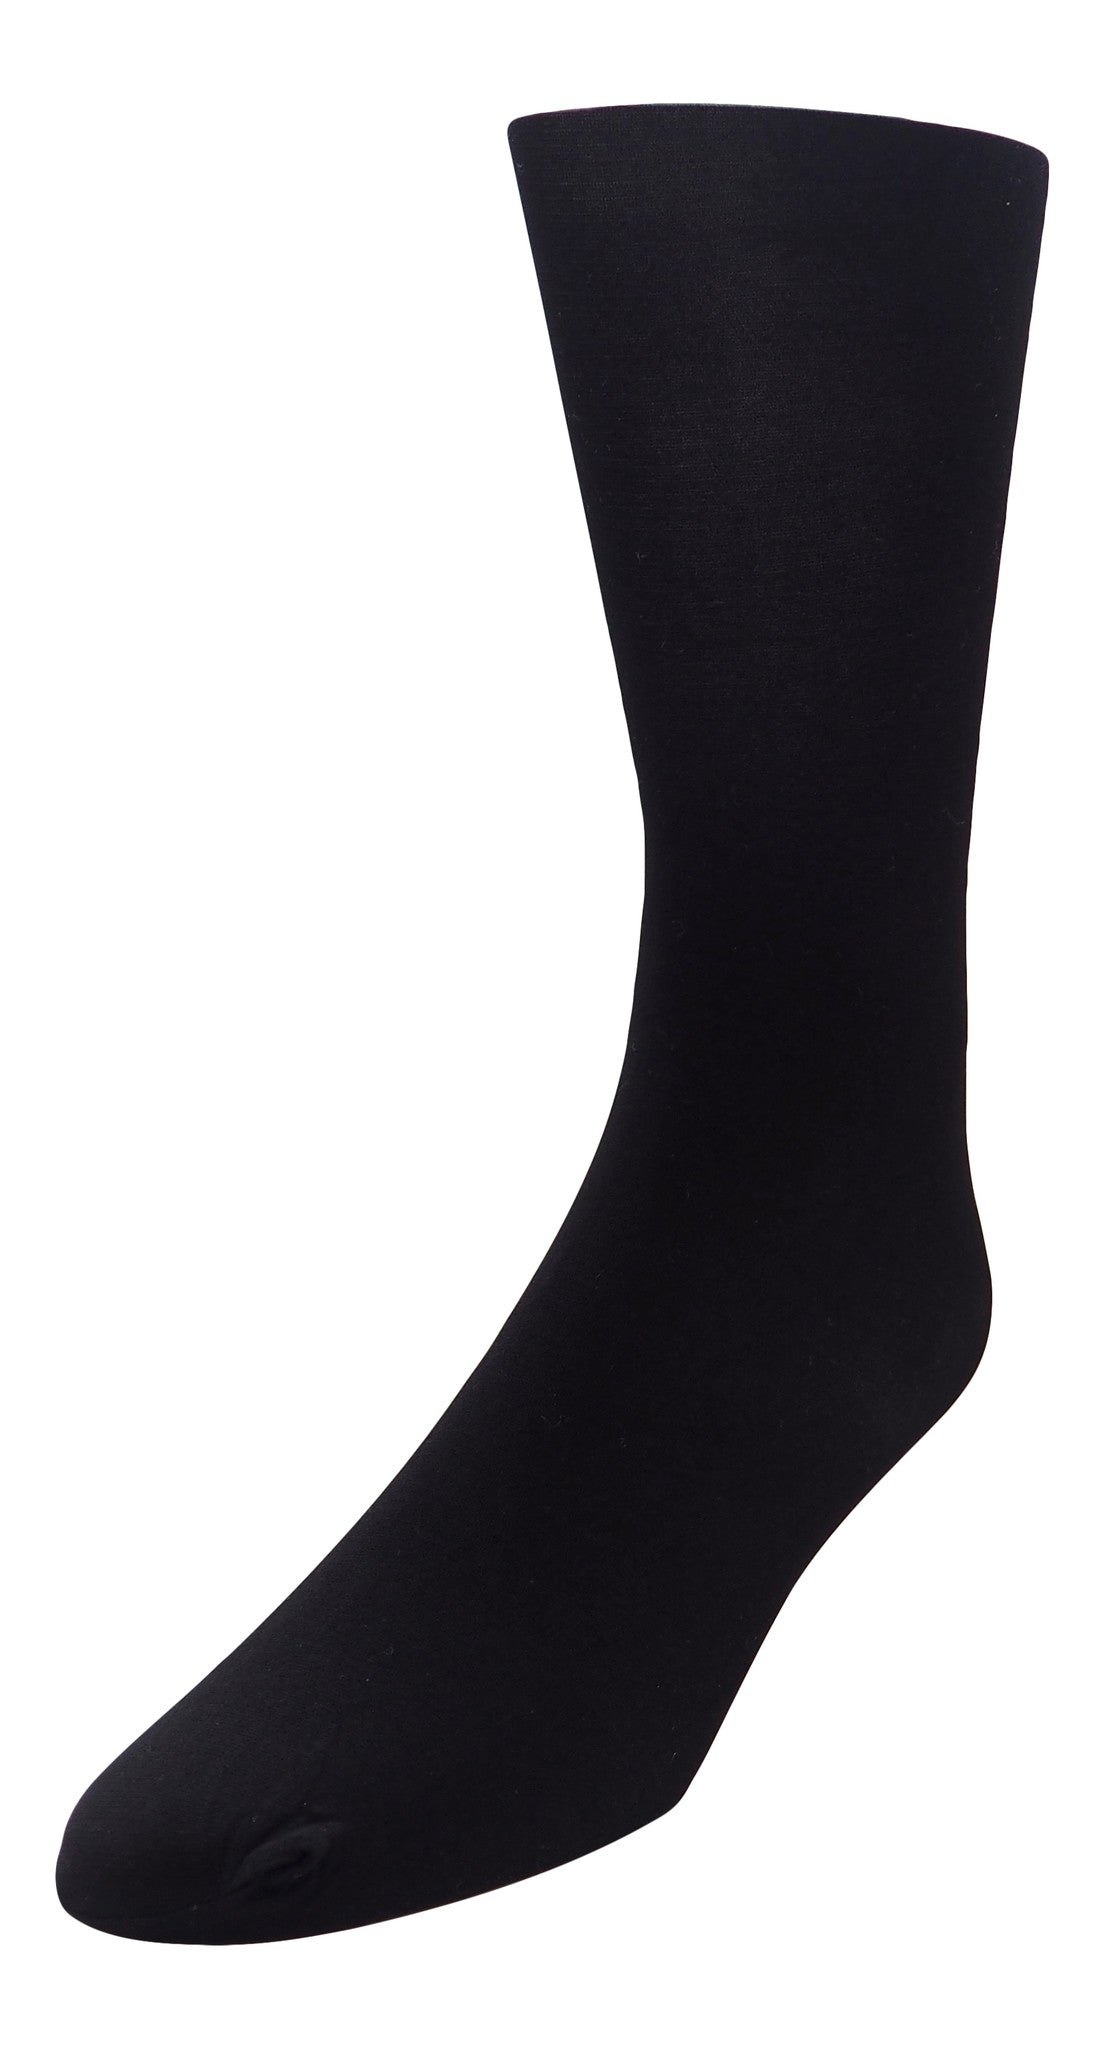 4-Pack Nylon Spandex Opaque Tights (Black)